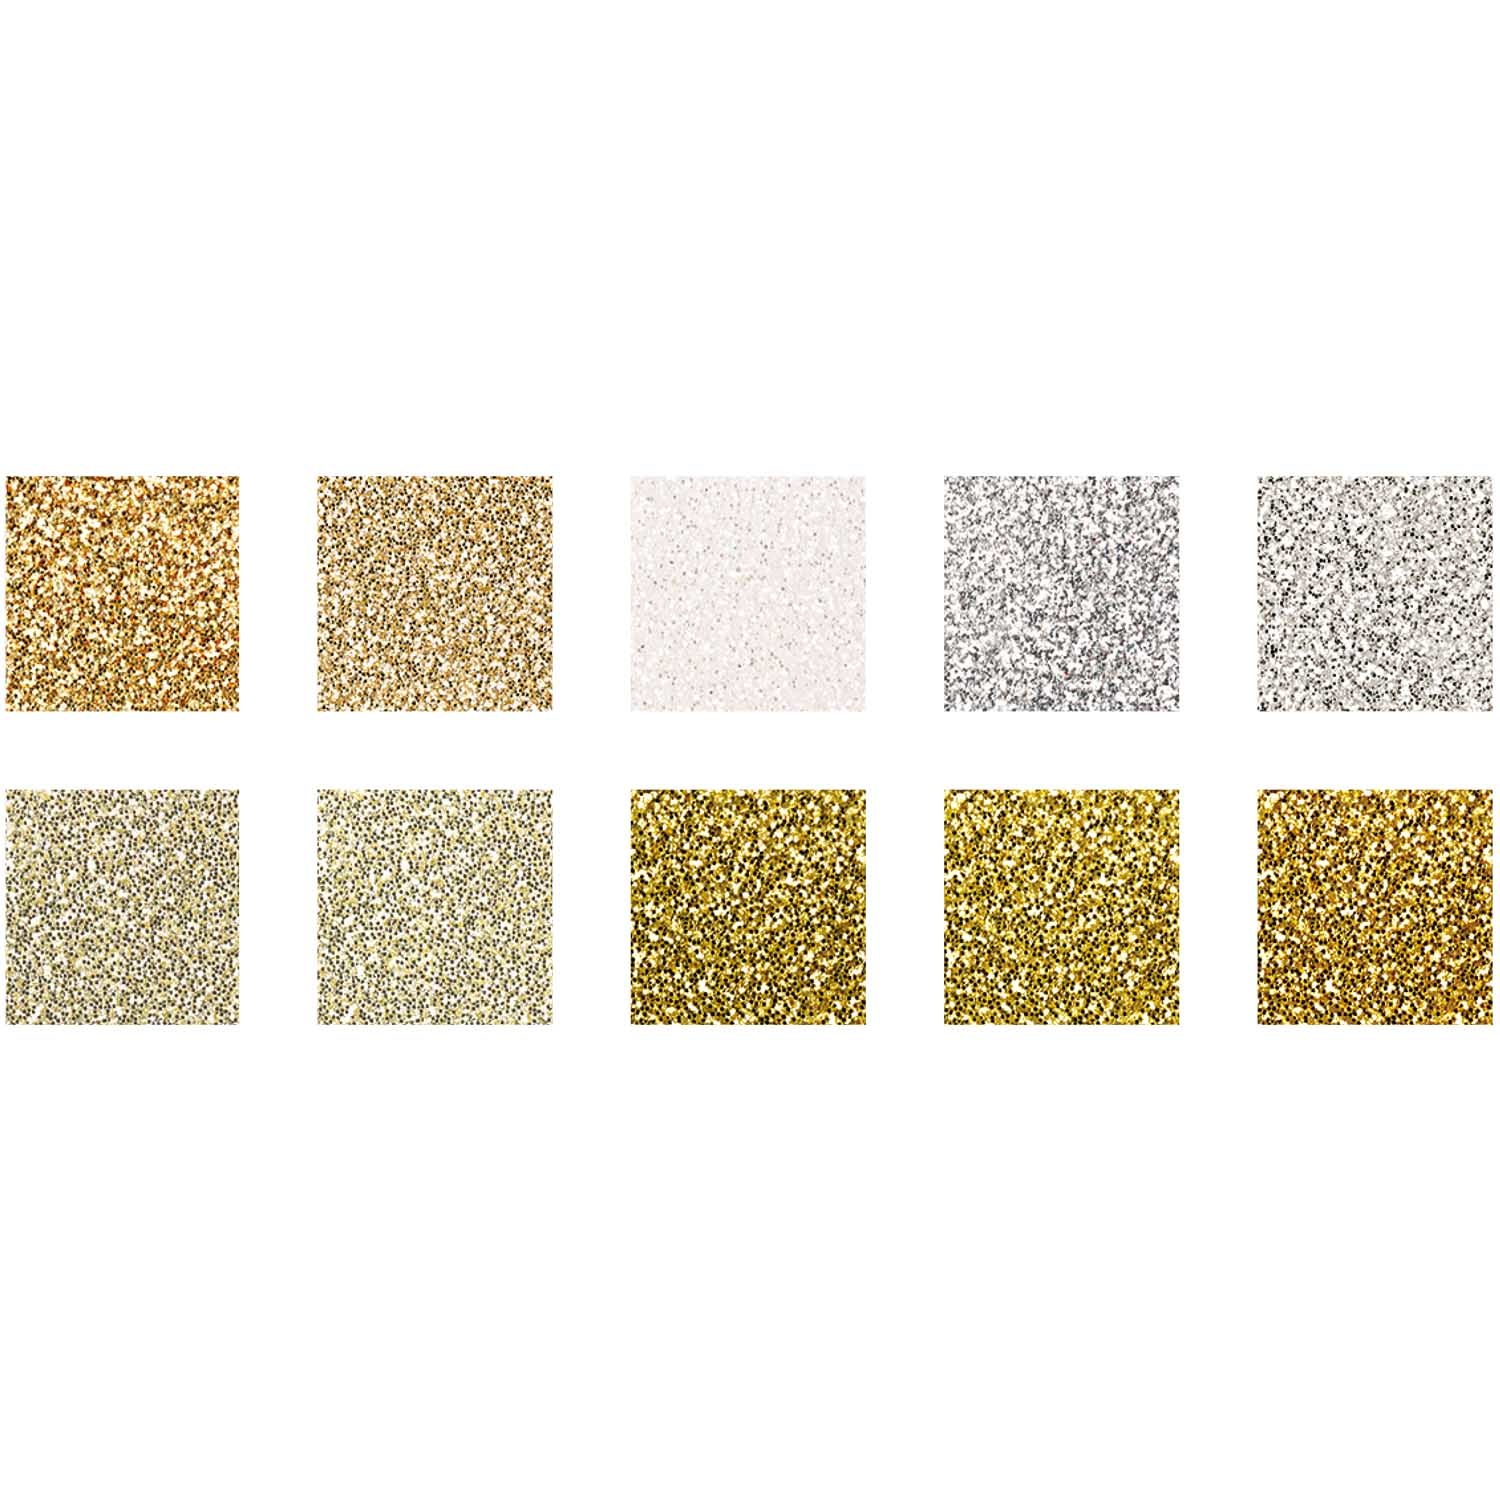 Rico NAY GLITTER PAPER PAD, GLAMOUR MIX 10 SHEETS, 210X295 MM, 180 G